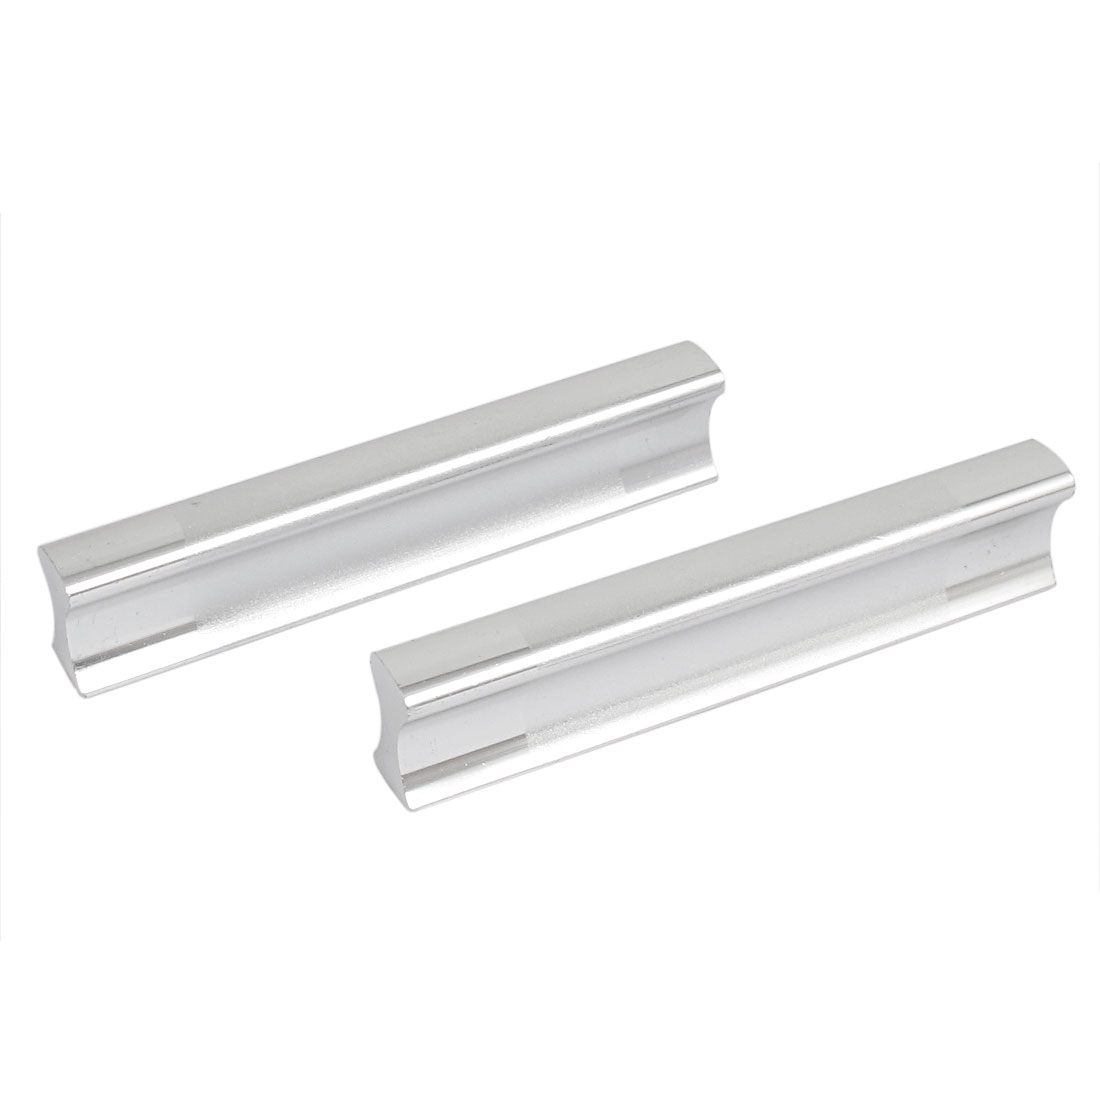 2pcs Kitchen Drawer Cabinet Cupboard Door Bar Pull Handle Knob 110mm